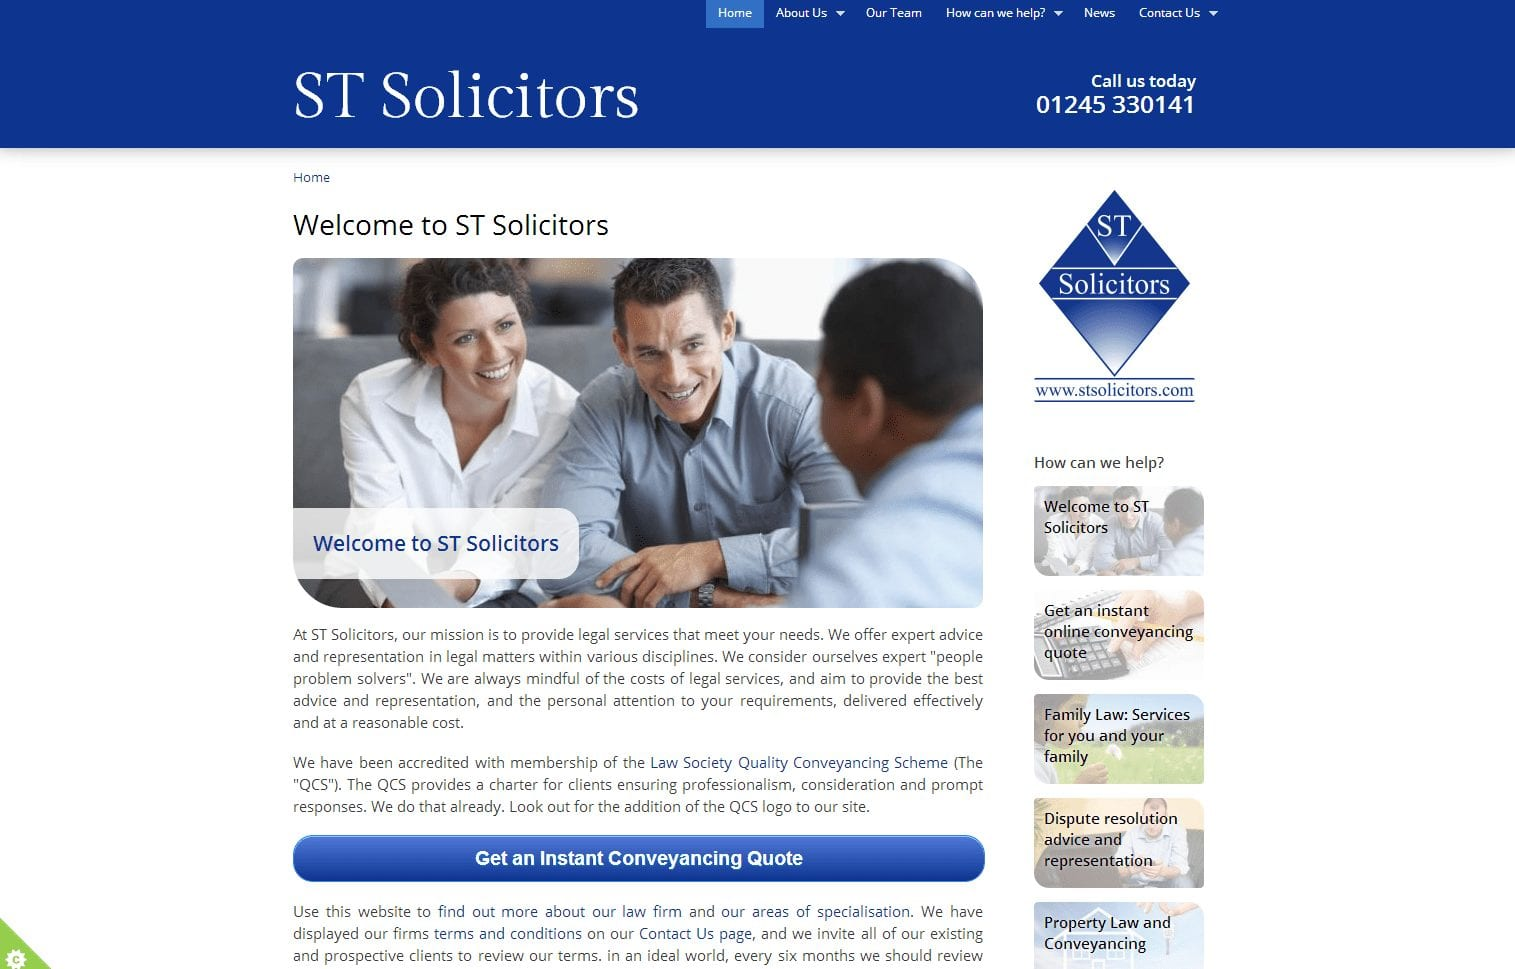 new-website-and-facebook-page-for-st-solicitors.png